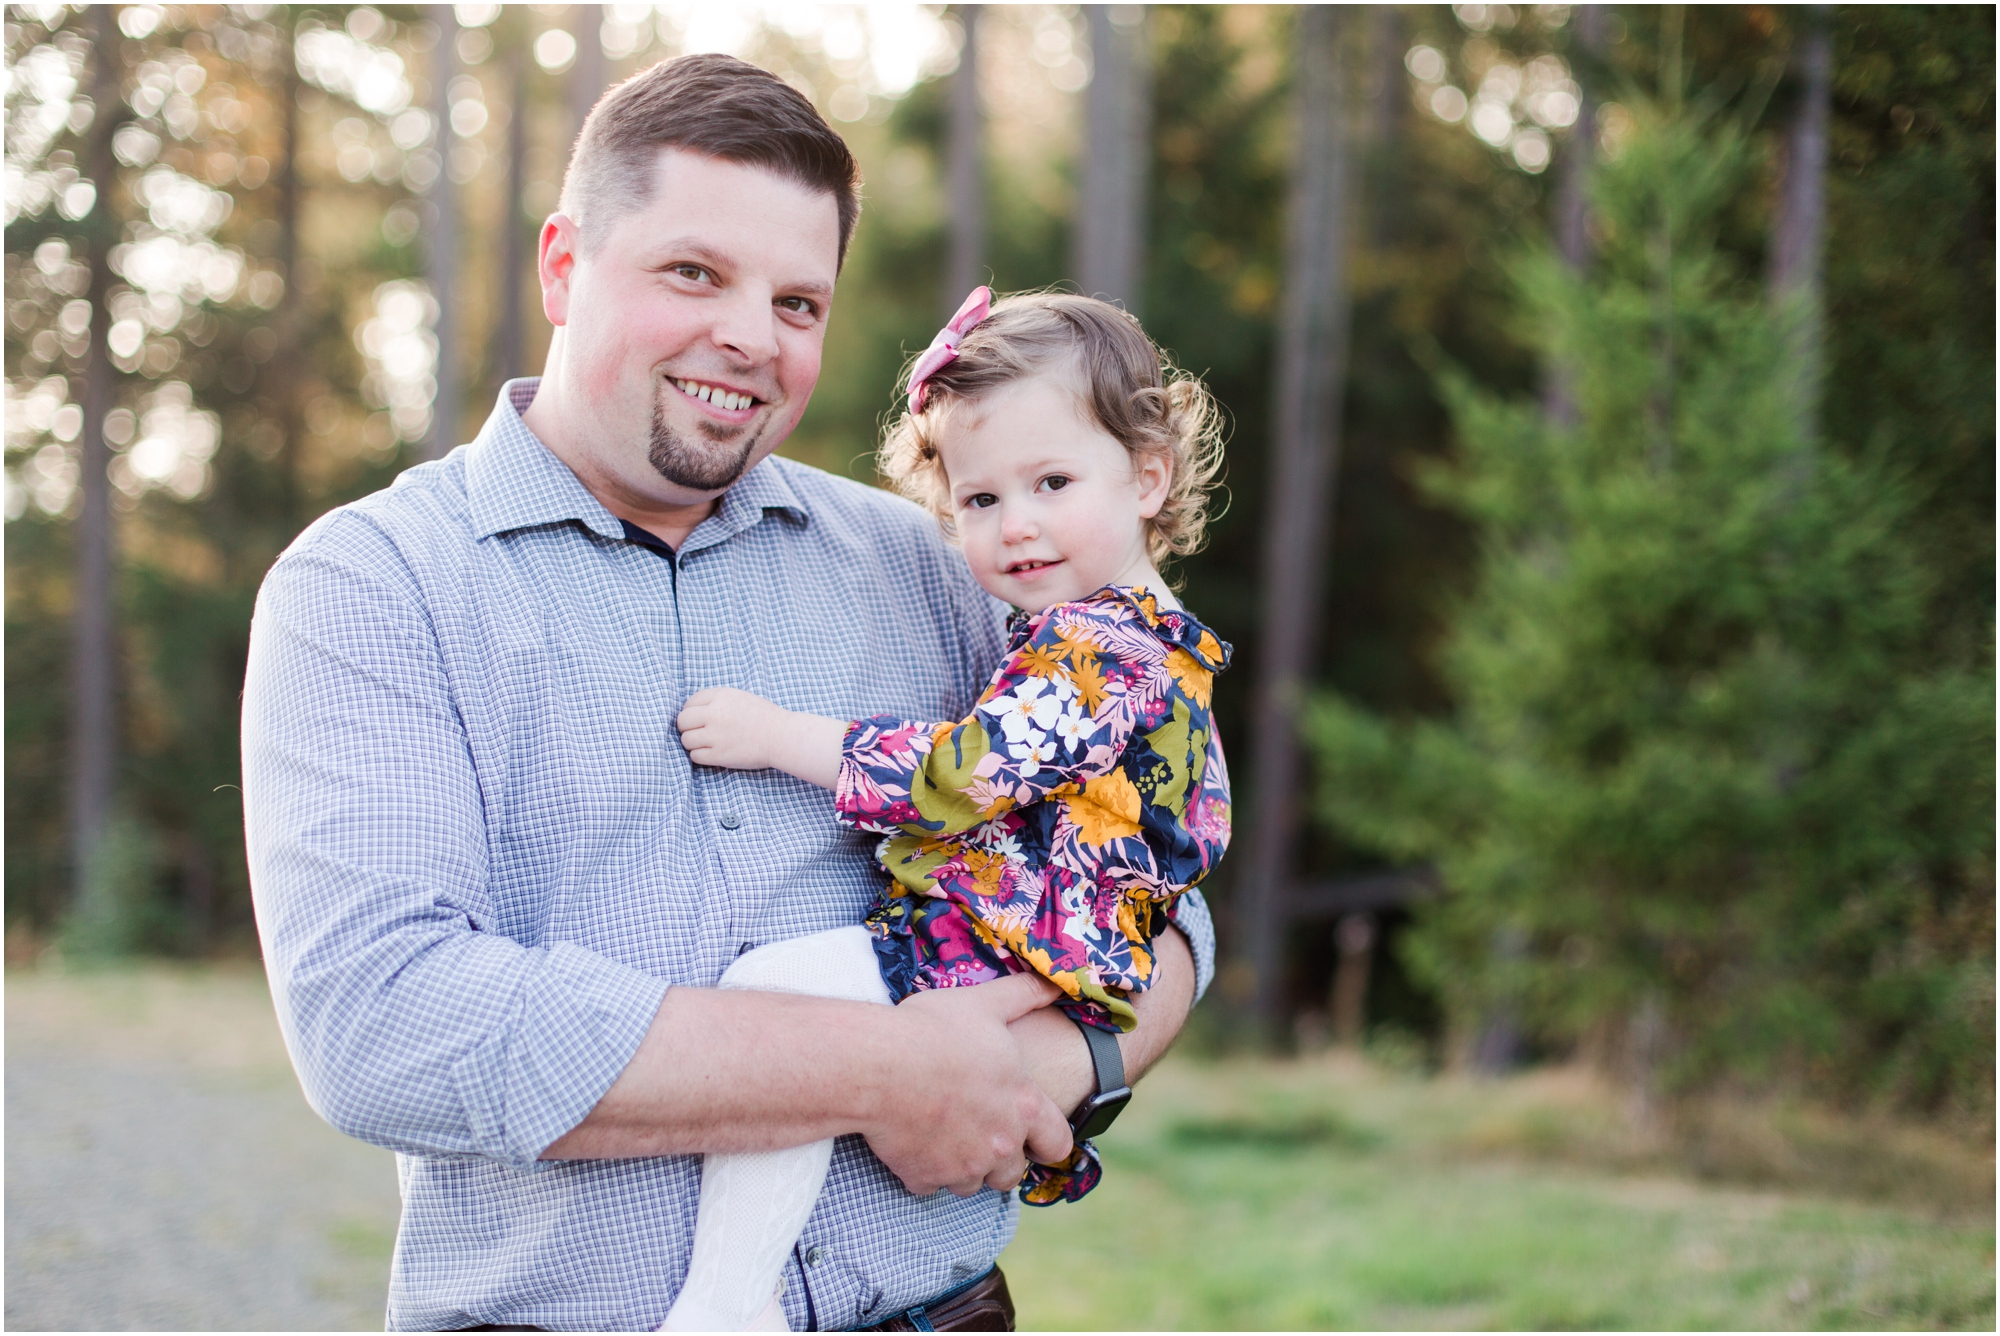 Fall family pictures by Briana Calderon Photography based in the Greater Seattle & Tacoma, WA_0926.jpg